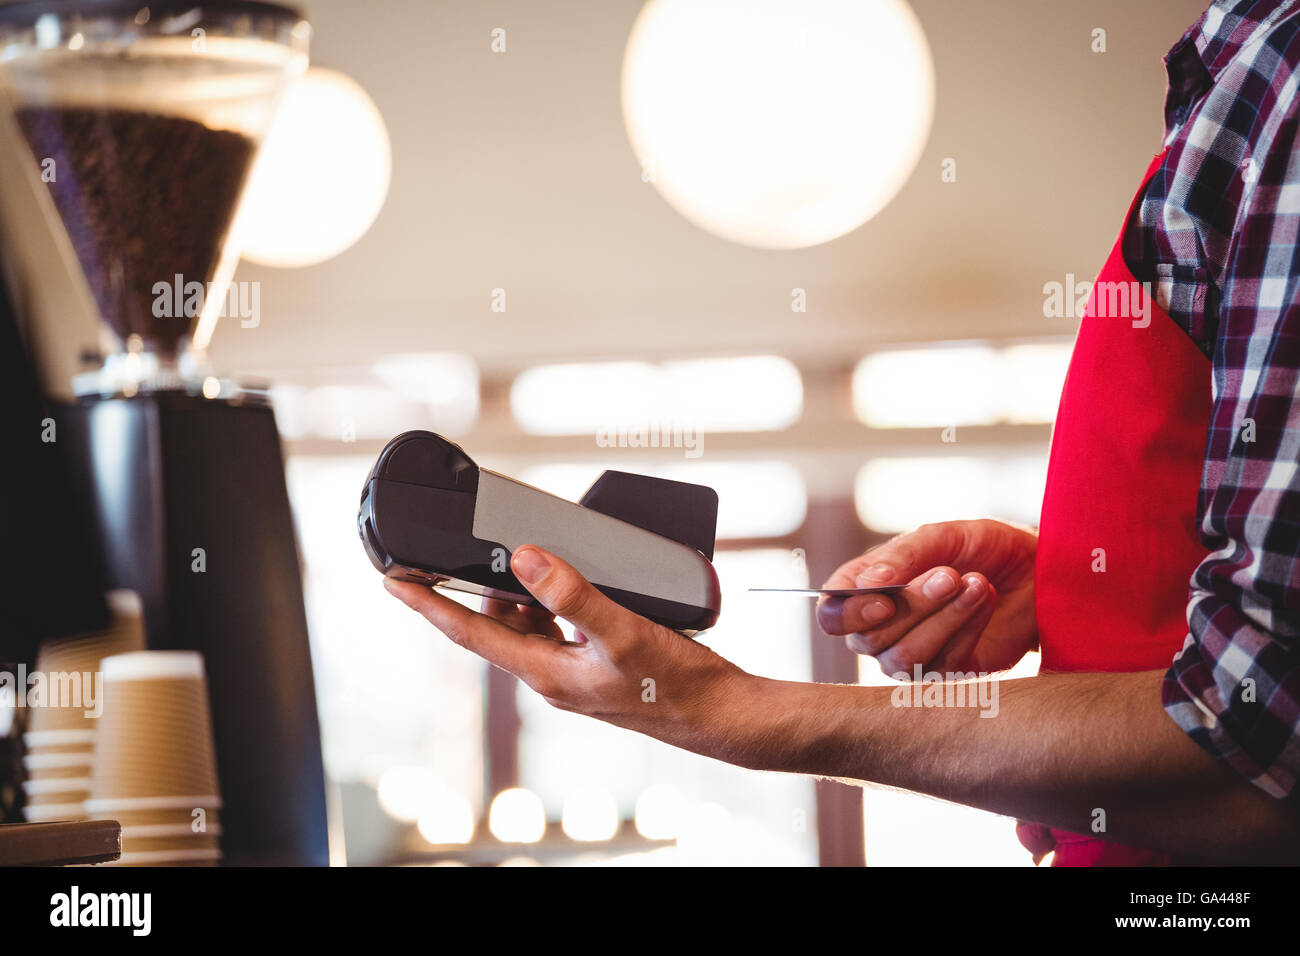 Waiter inserting customer's credit card into credit card machine Stock Photo